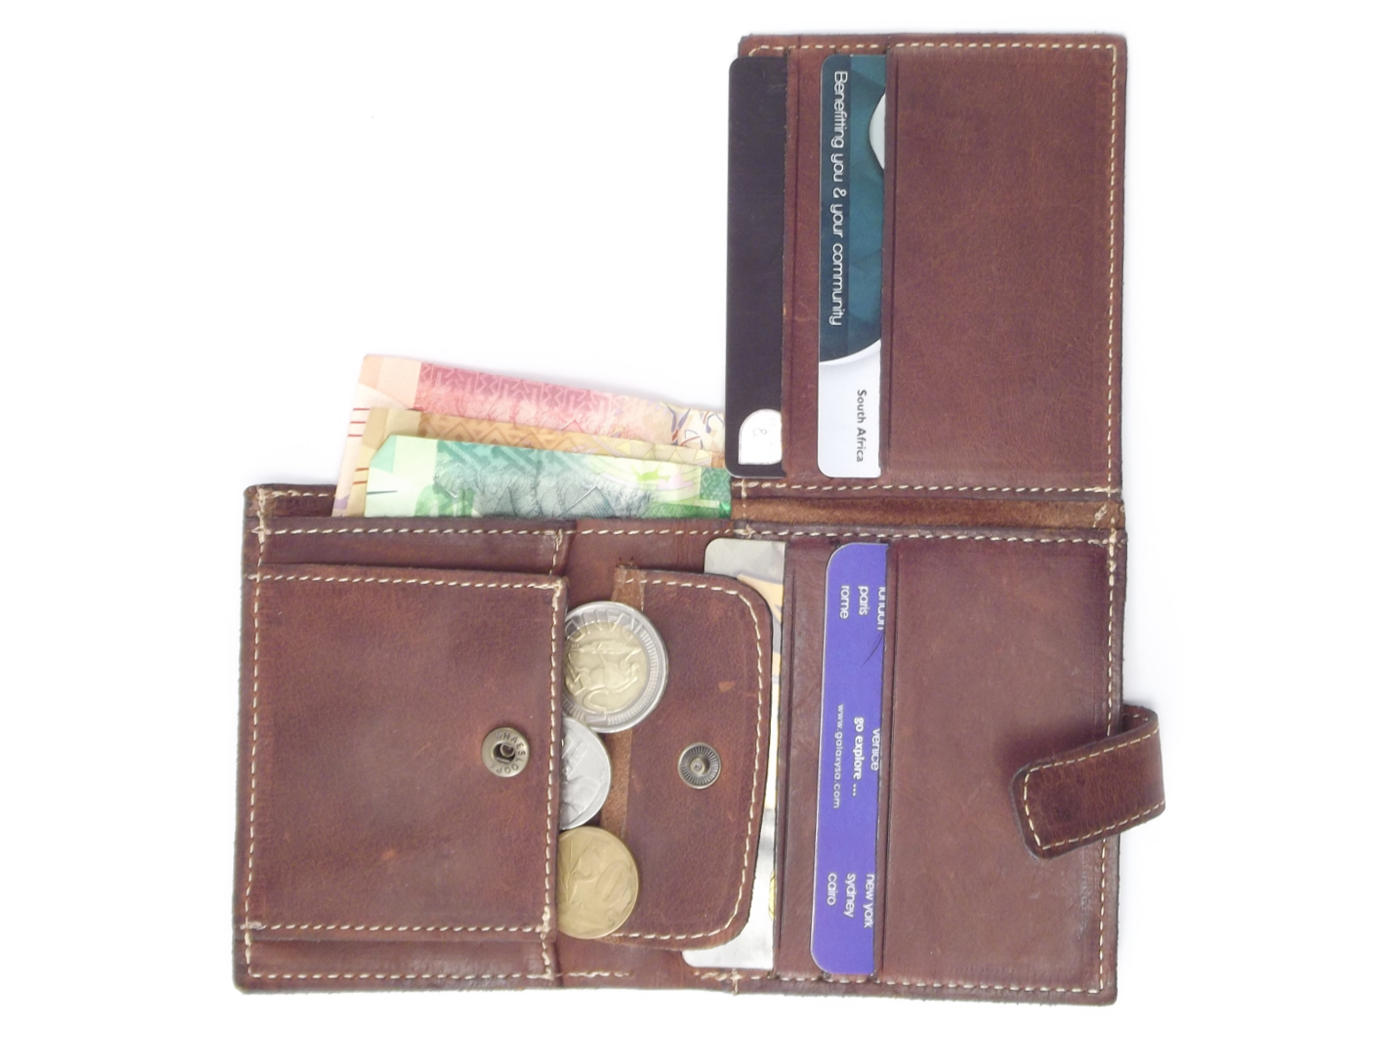 Genuine leather business card wallet for men | Der Lederhandler